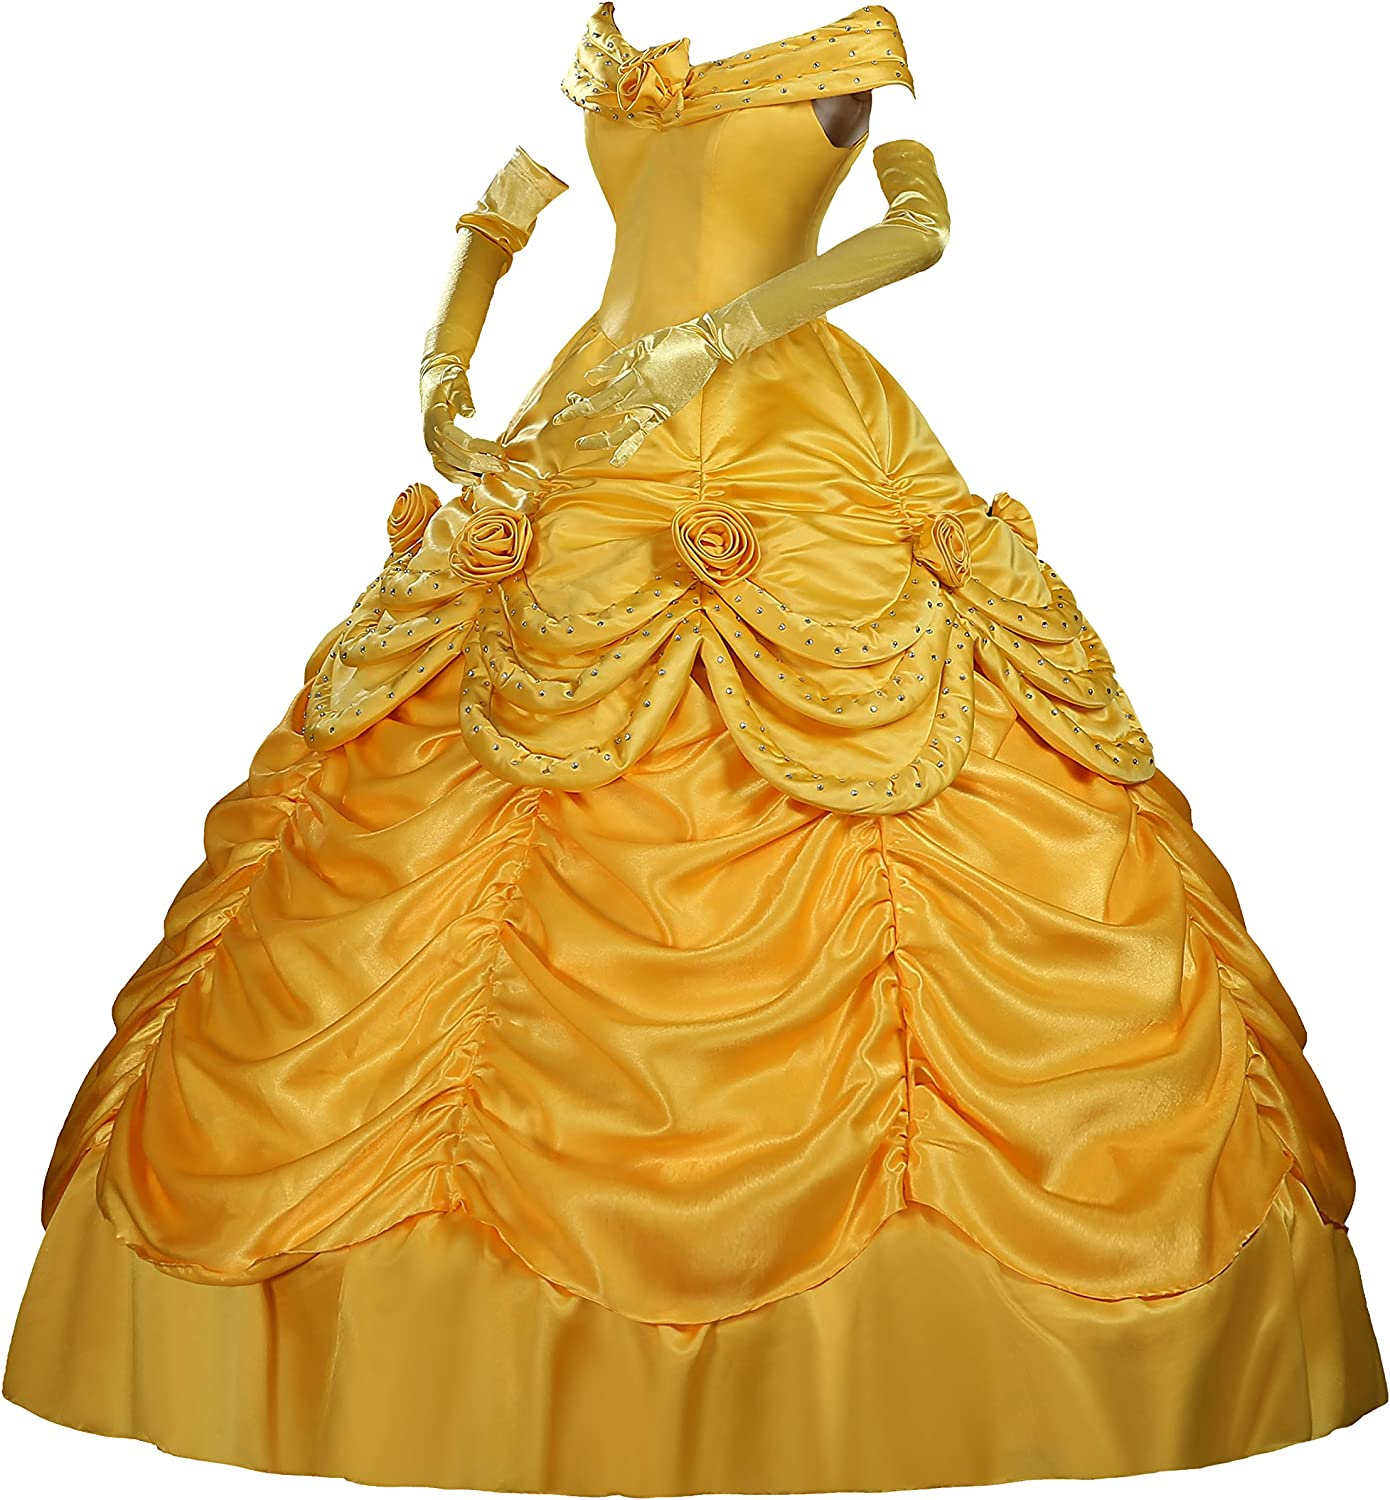 Belle Cosplay Costume Adult Beauty and The Beast Princess Fancy Dress Halloween+